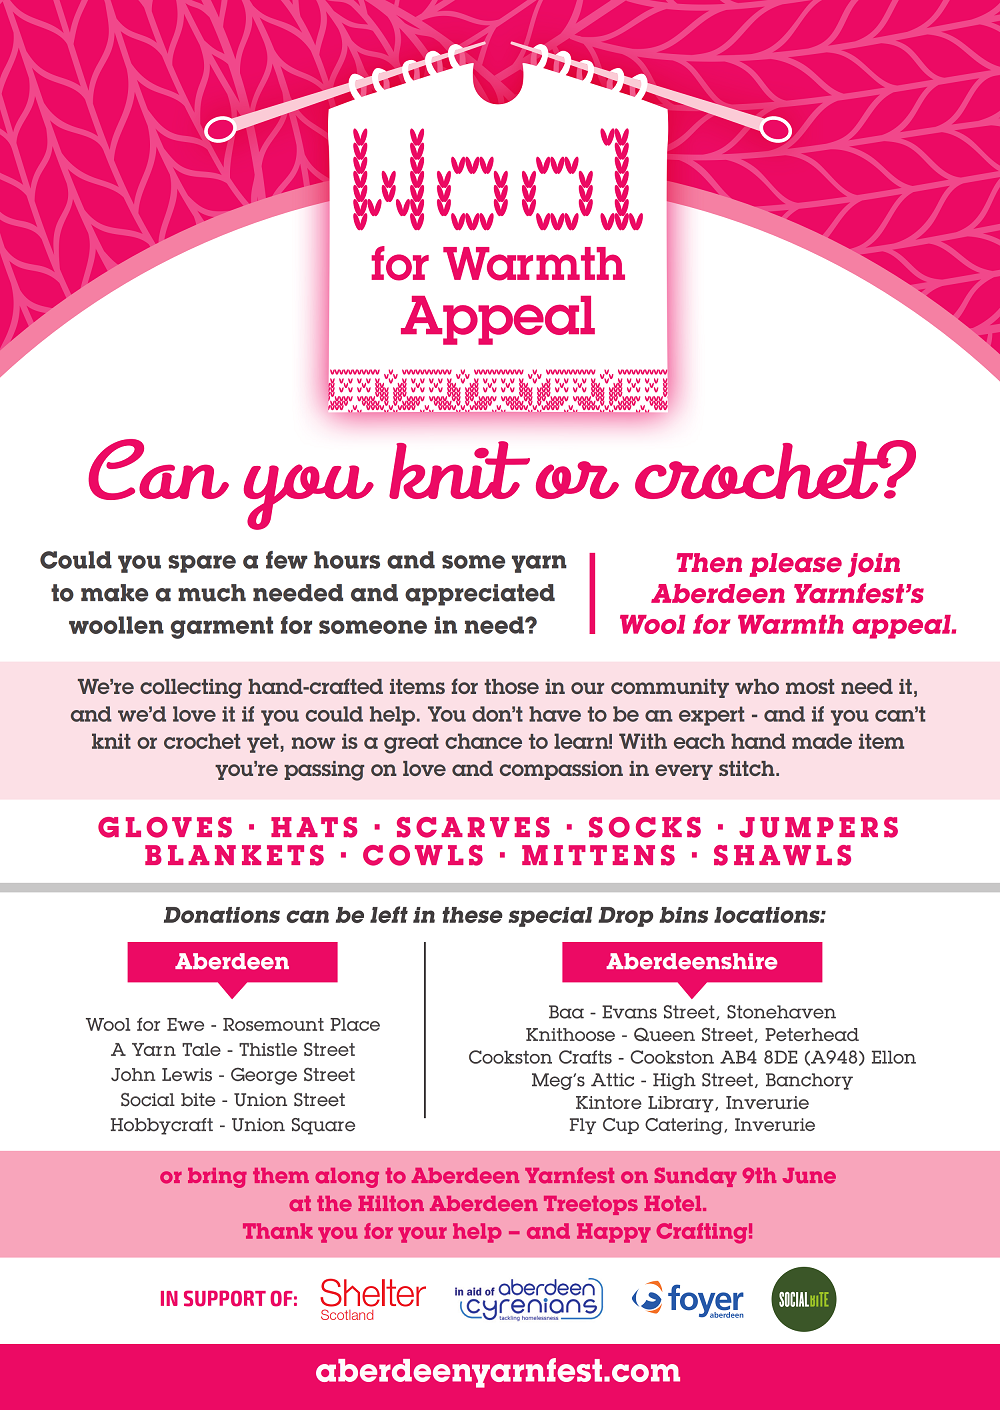 Wool for Warmth Appeal